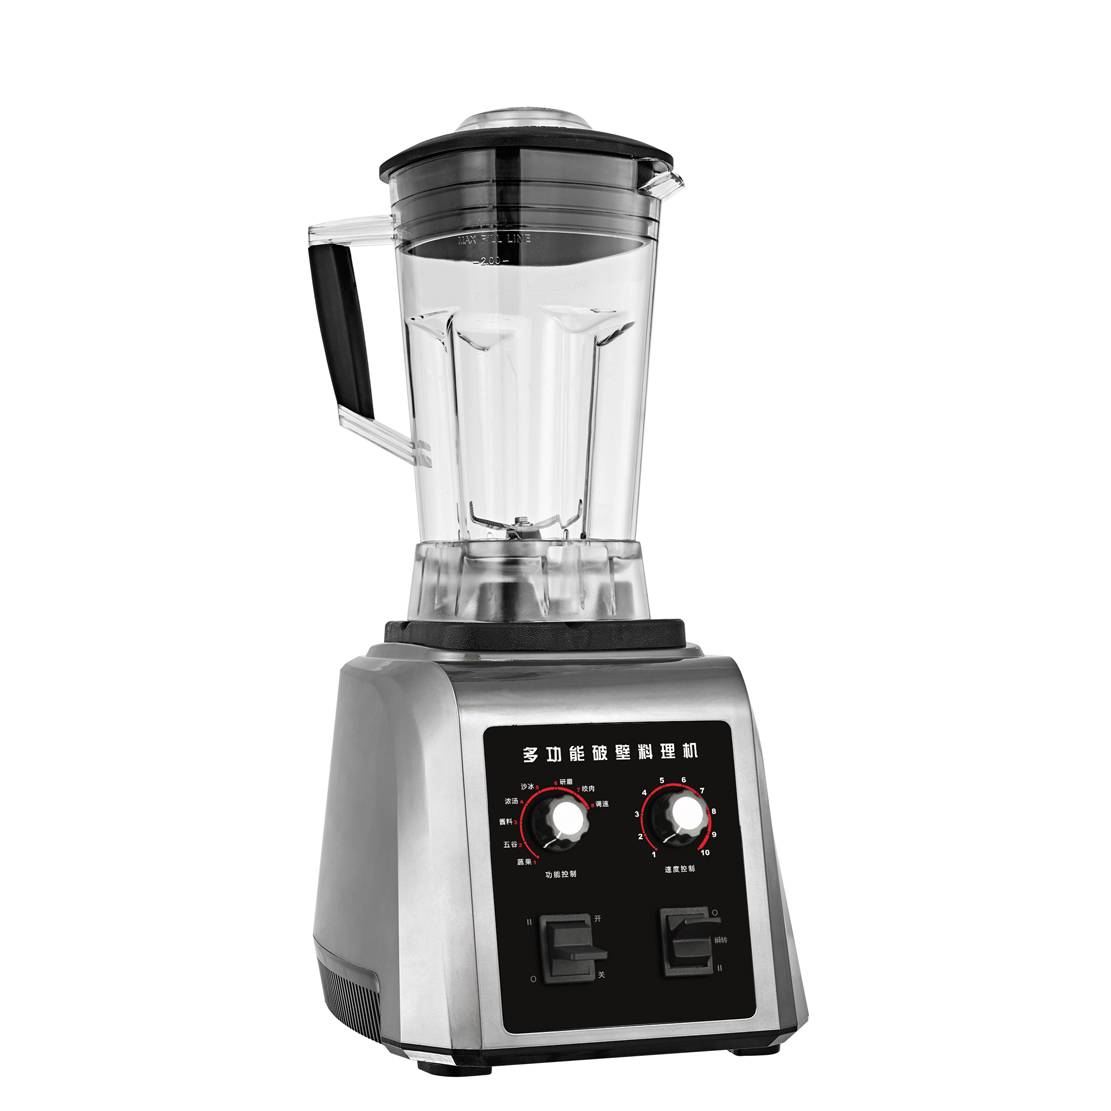 High power commercial grinder blender with copper motor